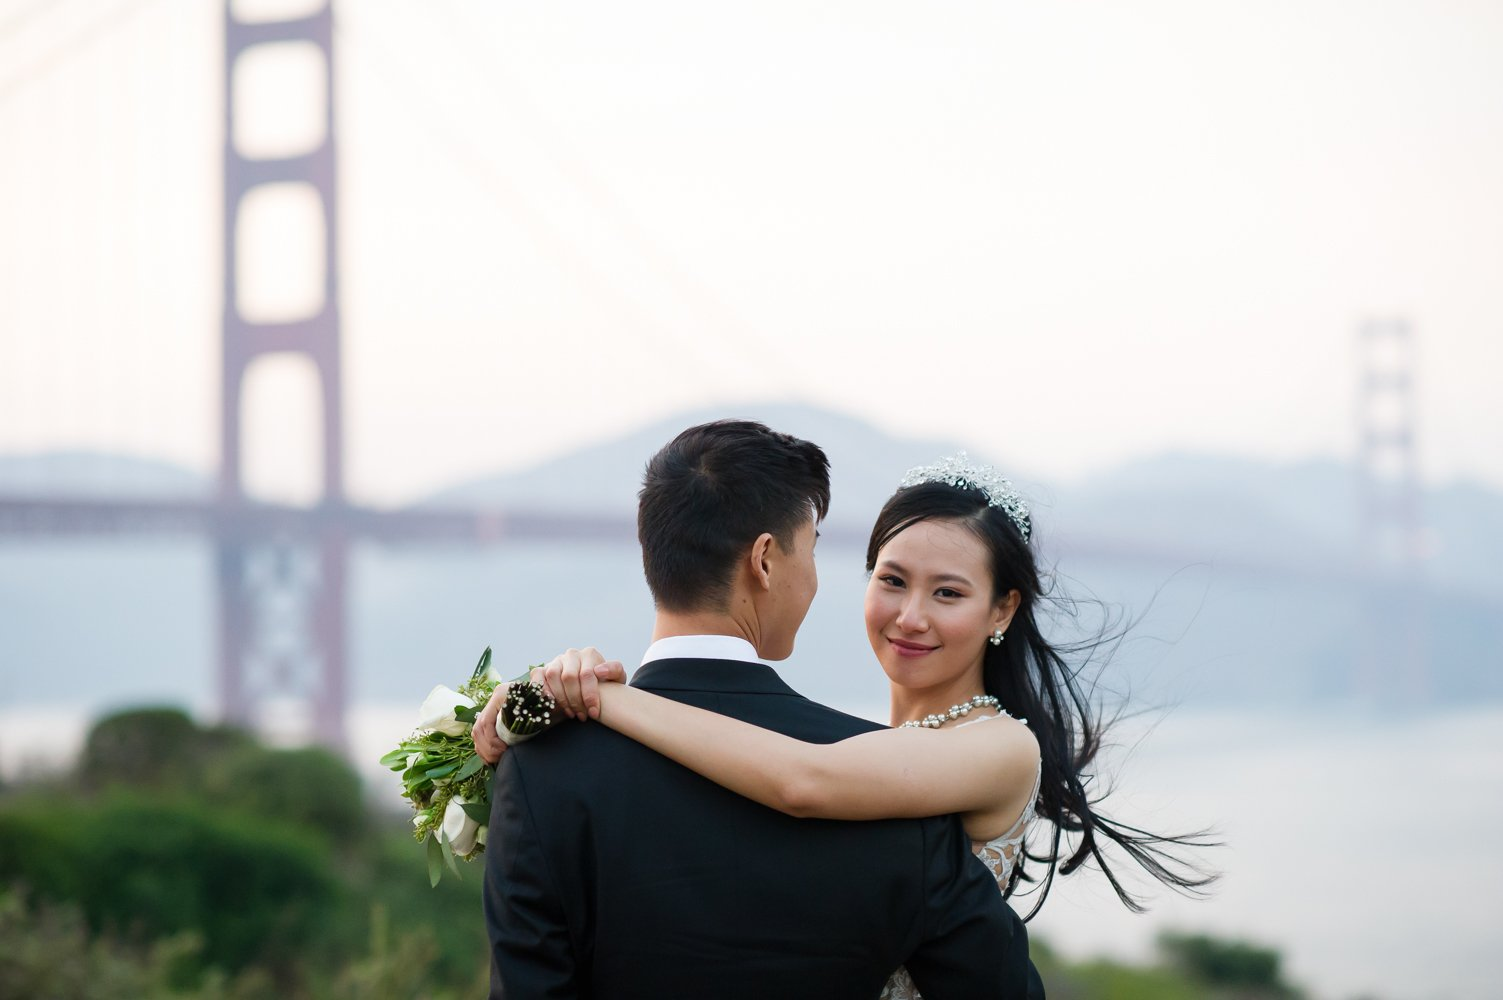 Chloe-Jackman-Photography-SF-Elopement-Golden-Gate-Bridge-2017-453